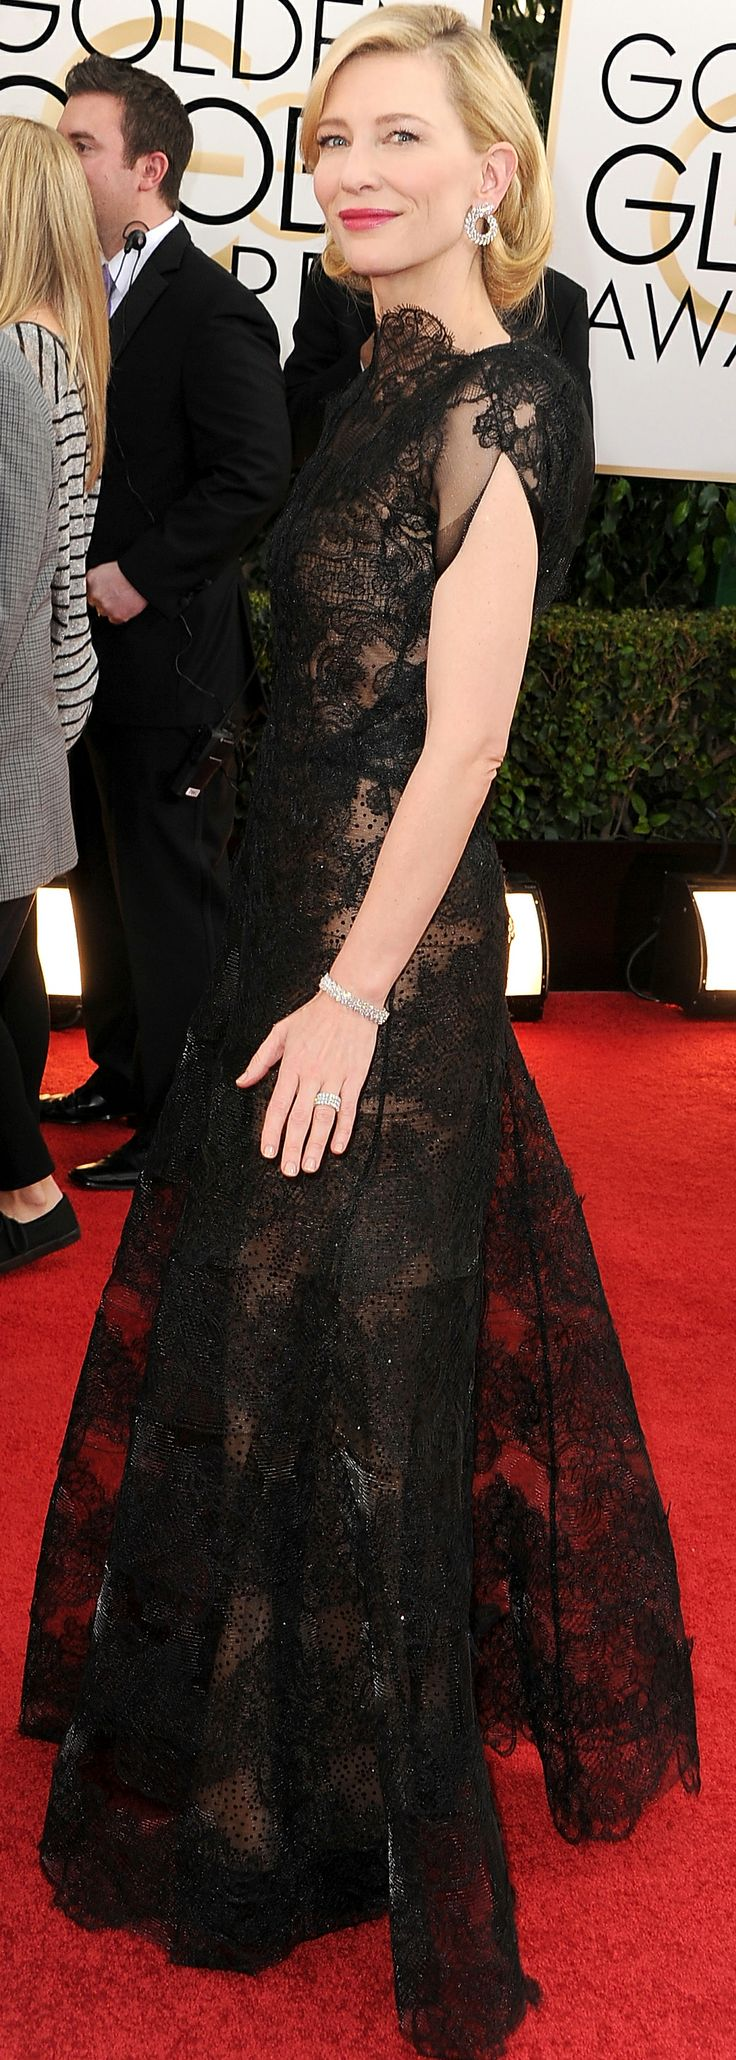 Cate Blanchett in Armani at the Golden Globes.